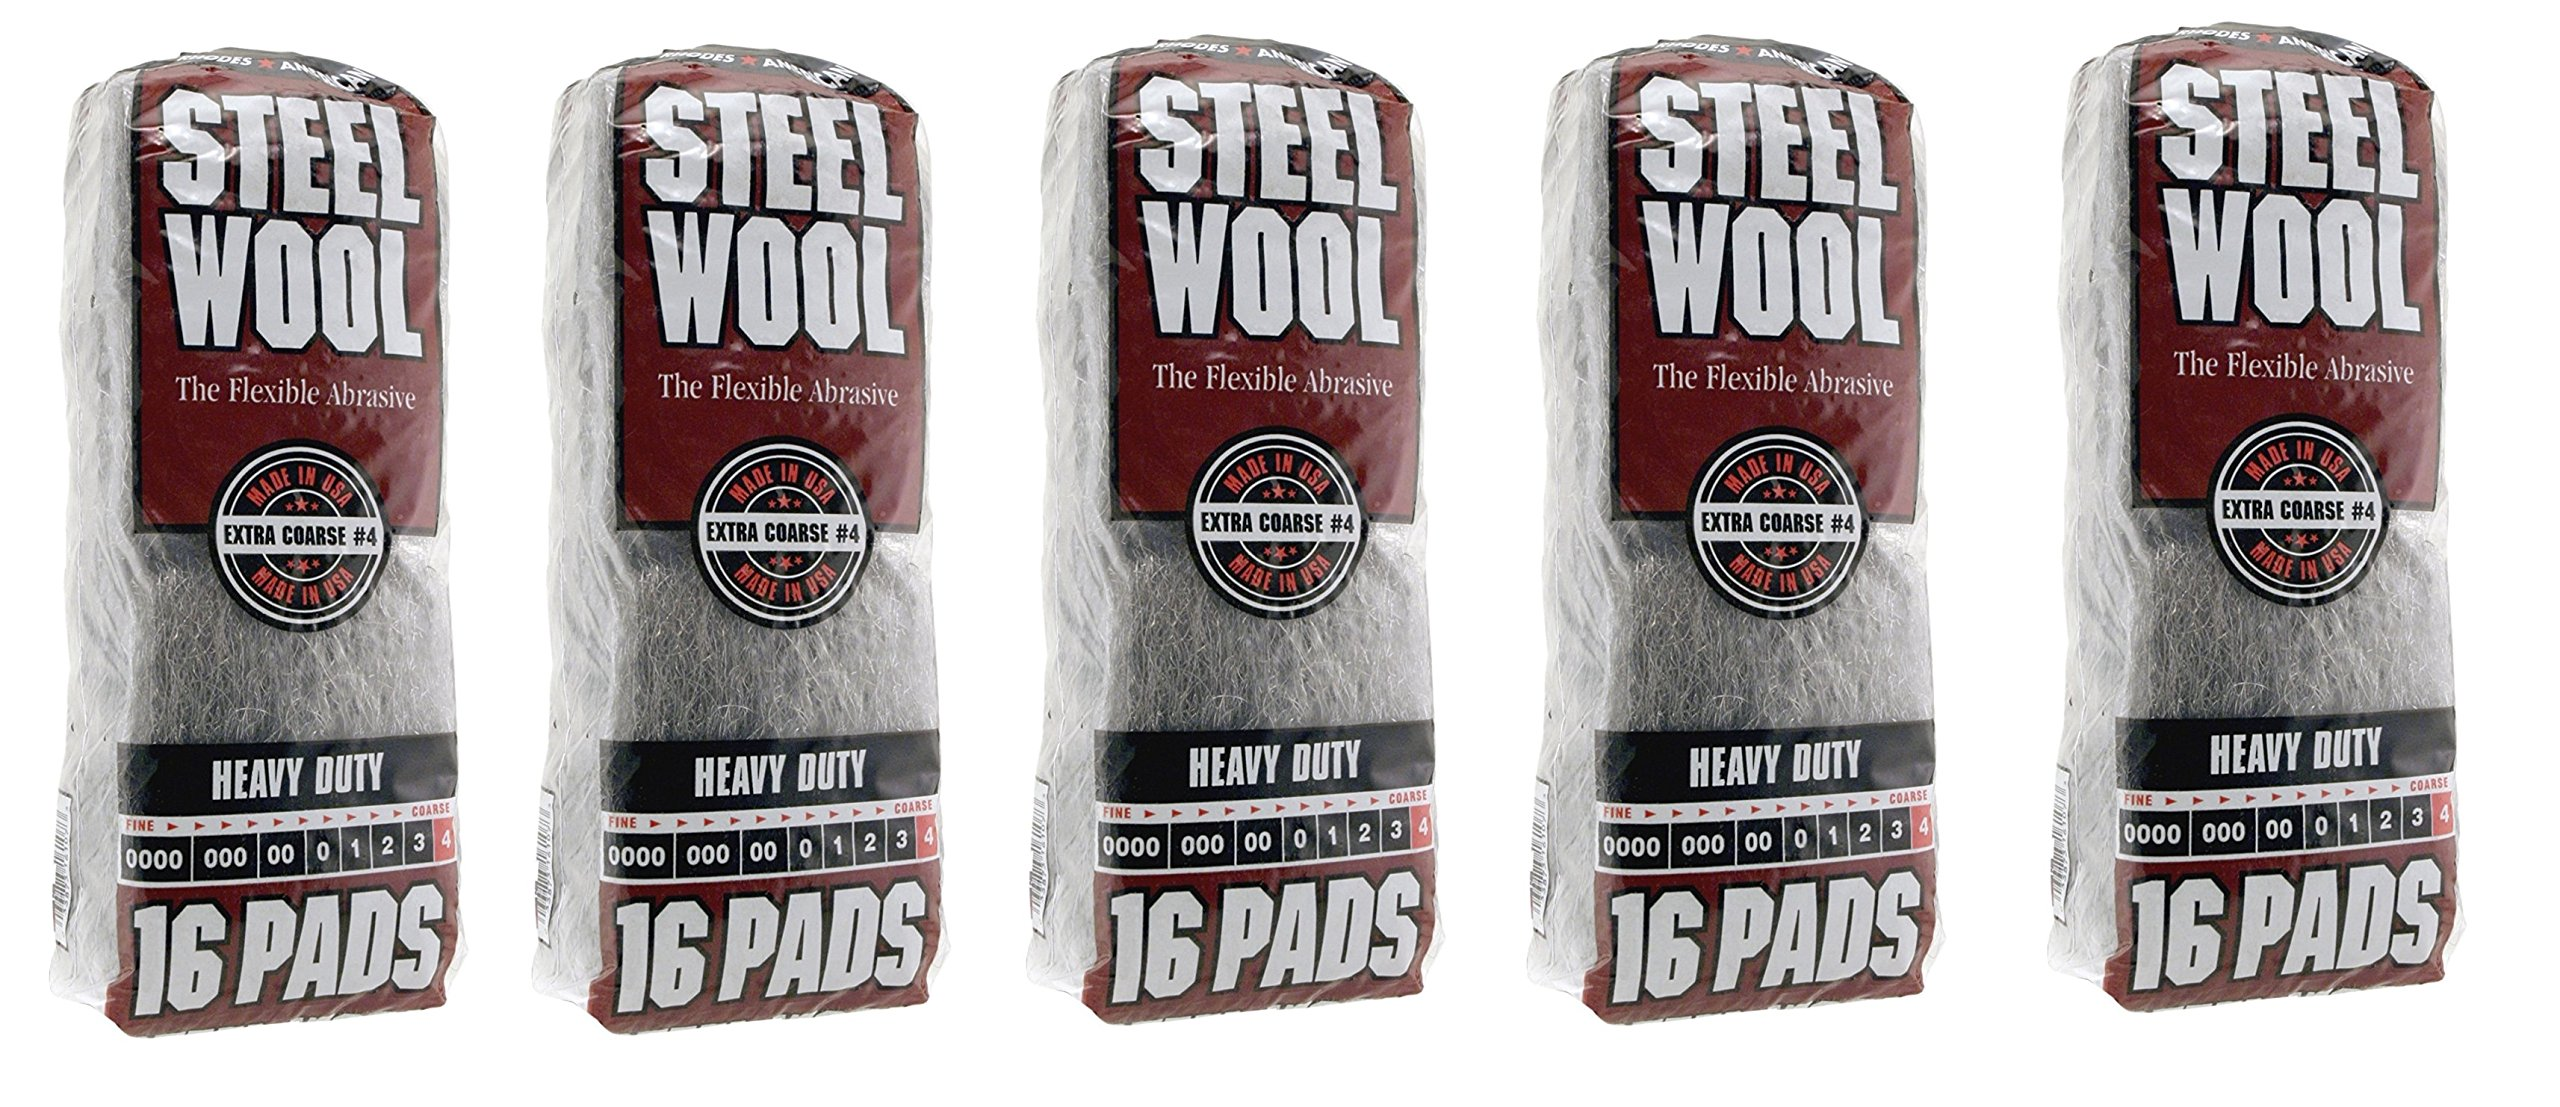 Homax Products 4 4 Homax Steel Wool Pad, No Grit, Sold as 5 Pack by Homax Products